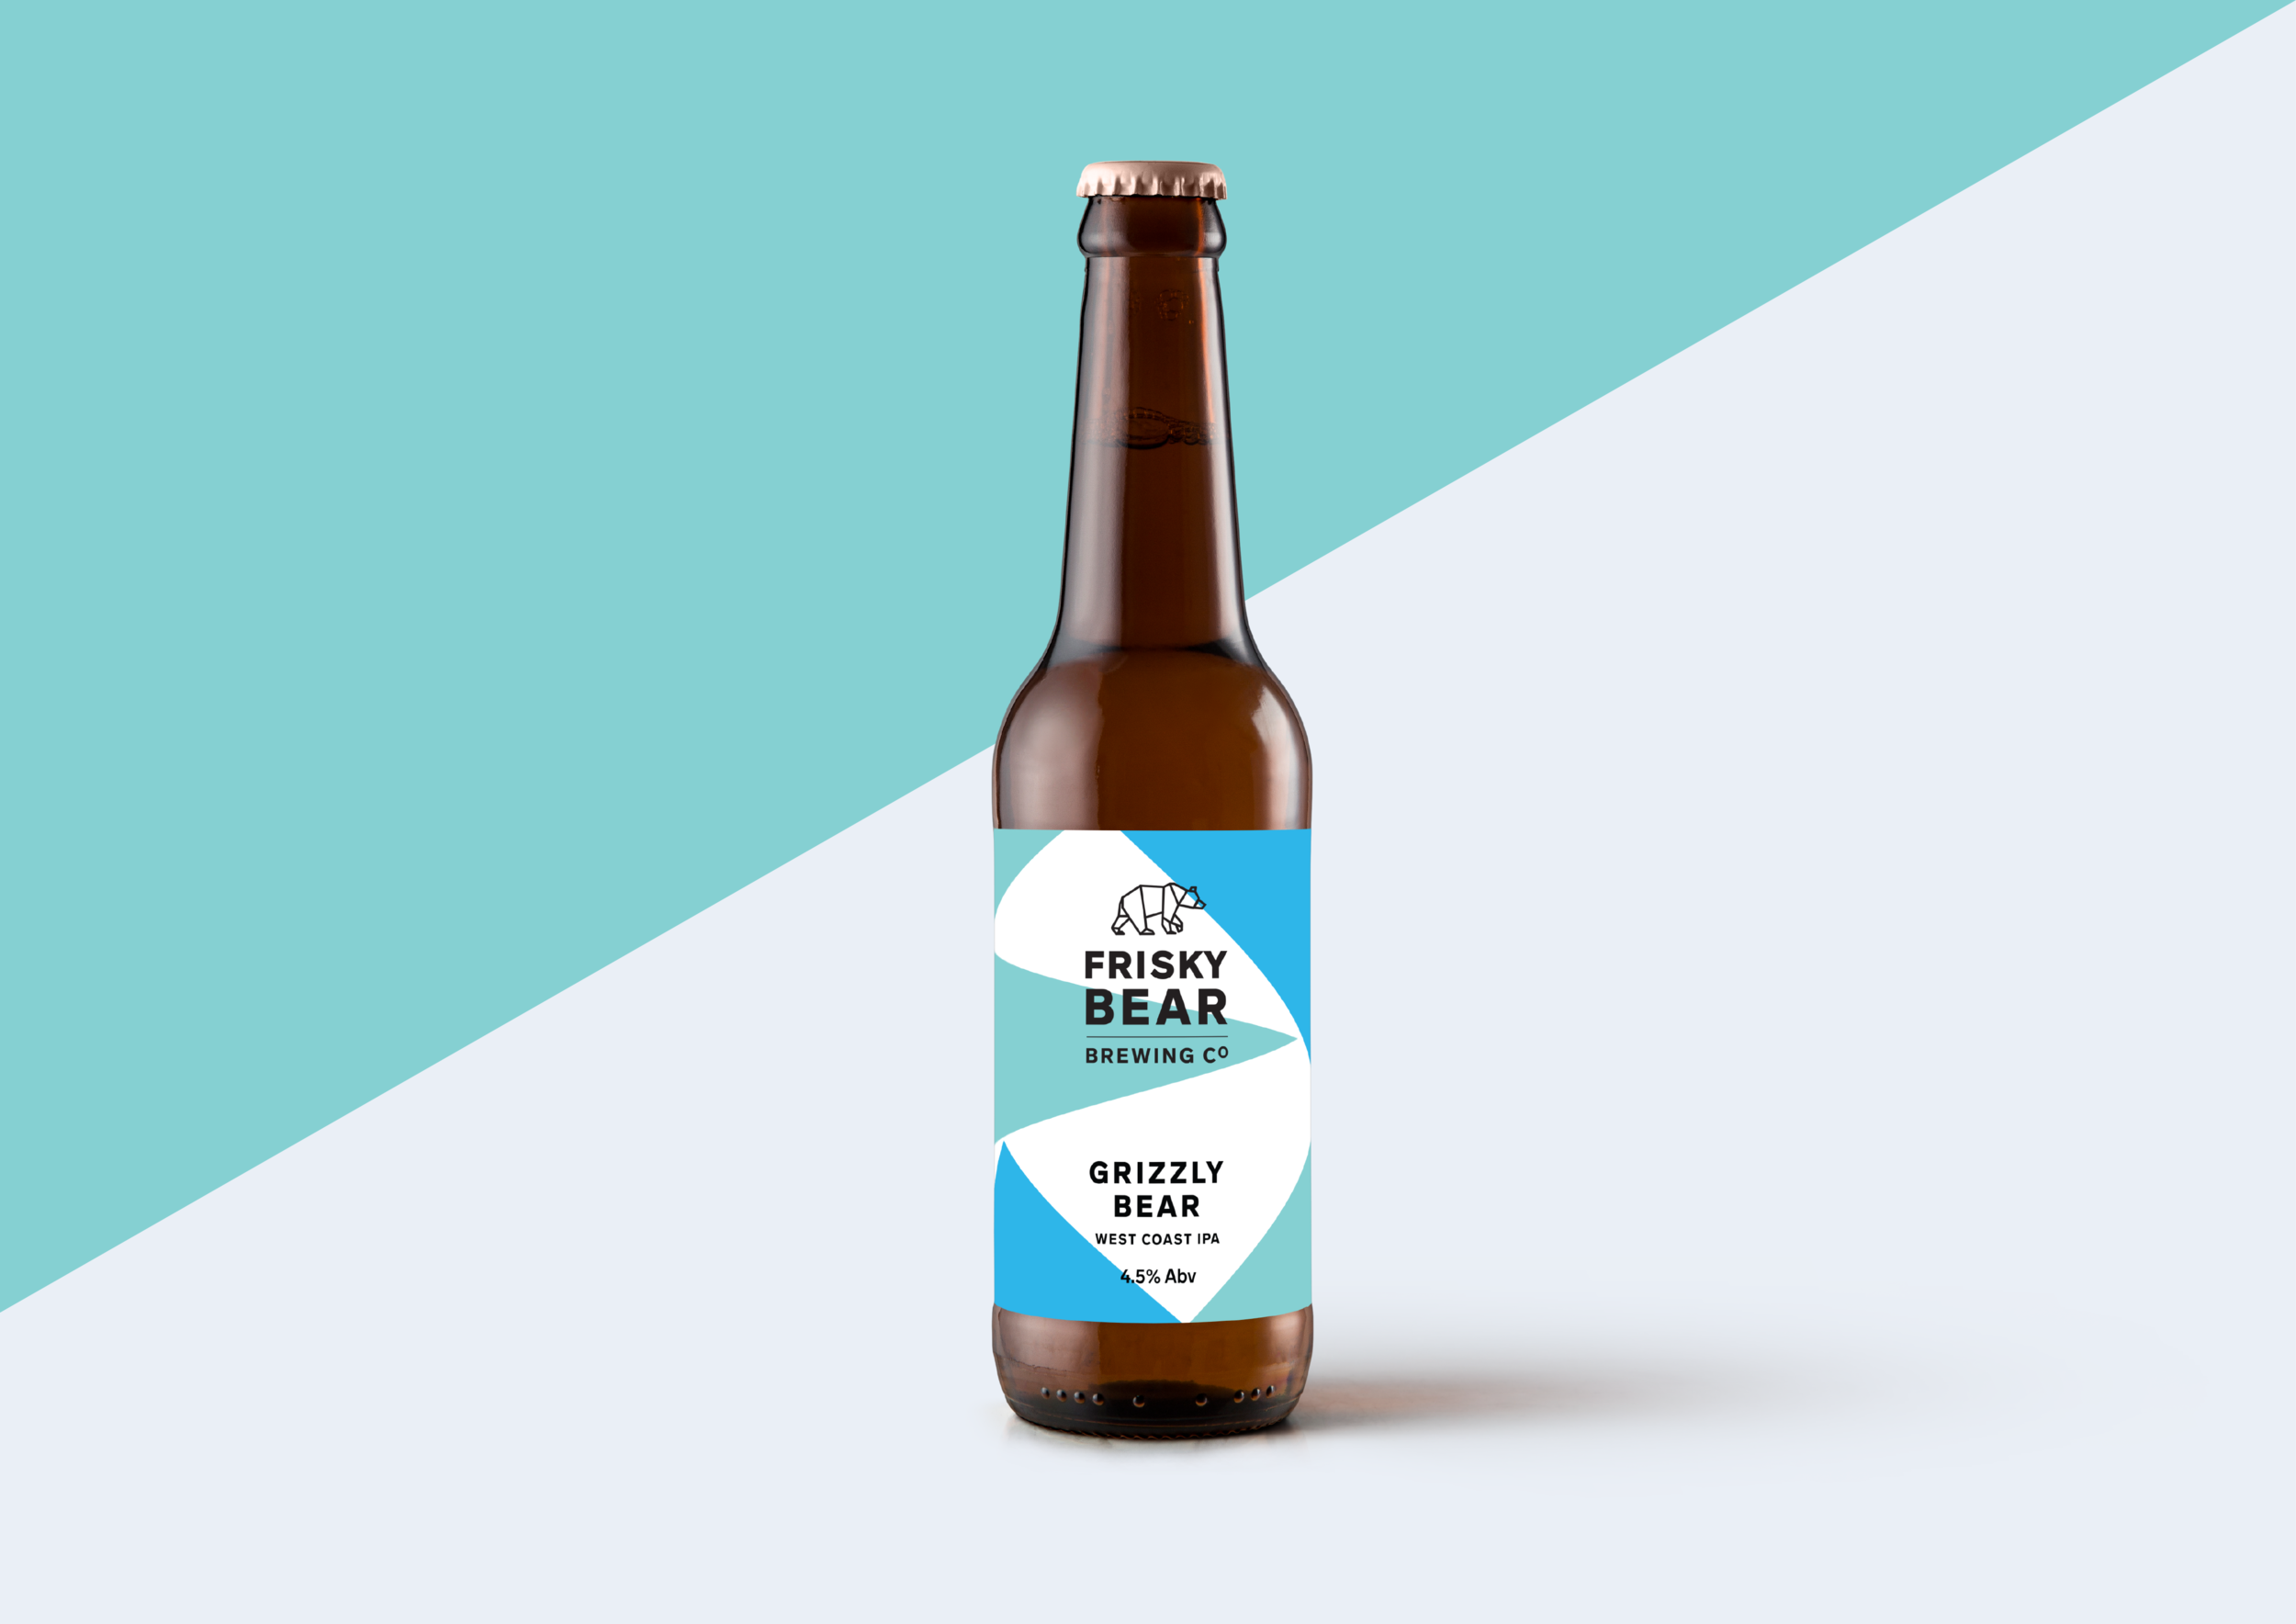 Branding and packaging design for Leeds based craft brewery Frisky Bear